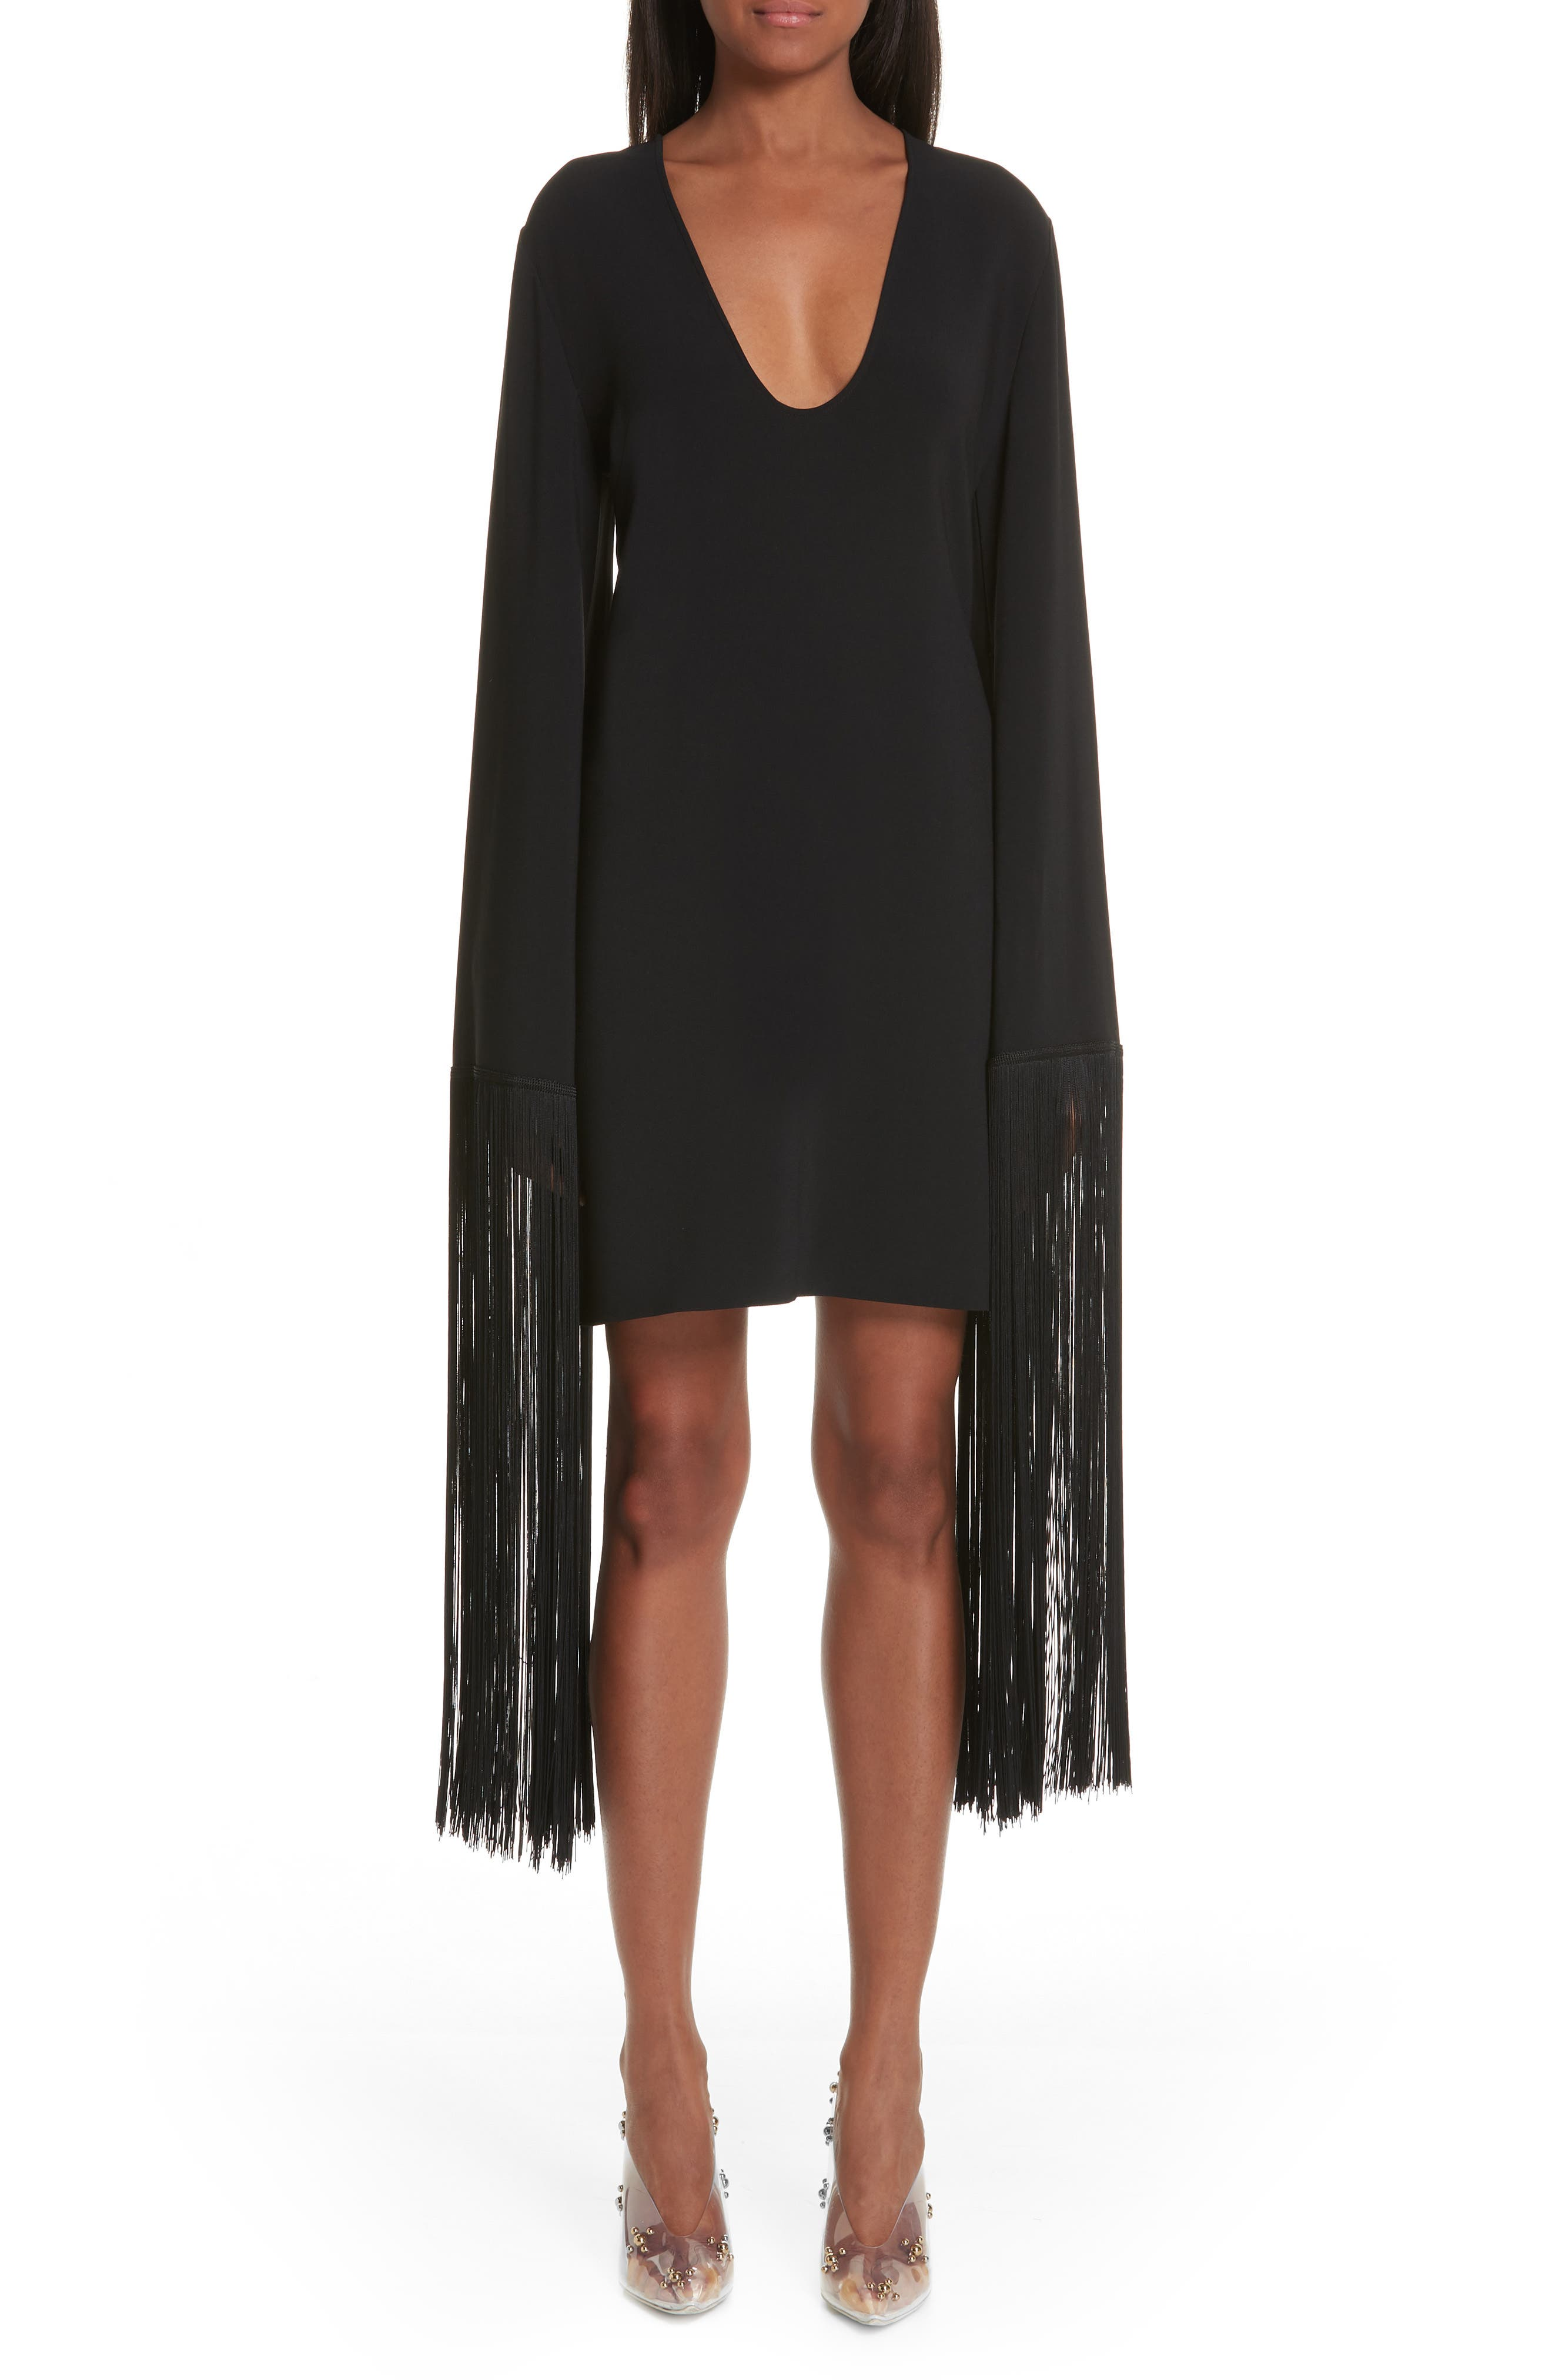 Stella Mccartney Fringe Cuff Shift Dress, 6 IT - Black